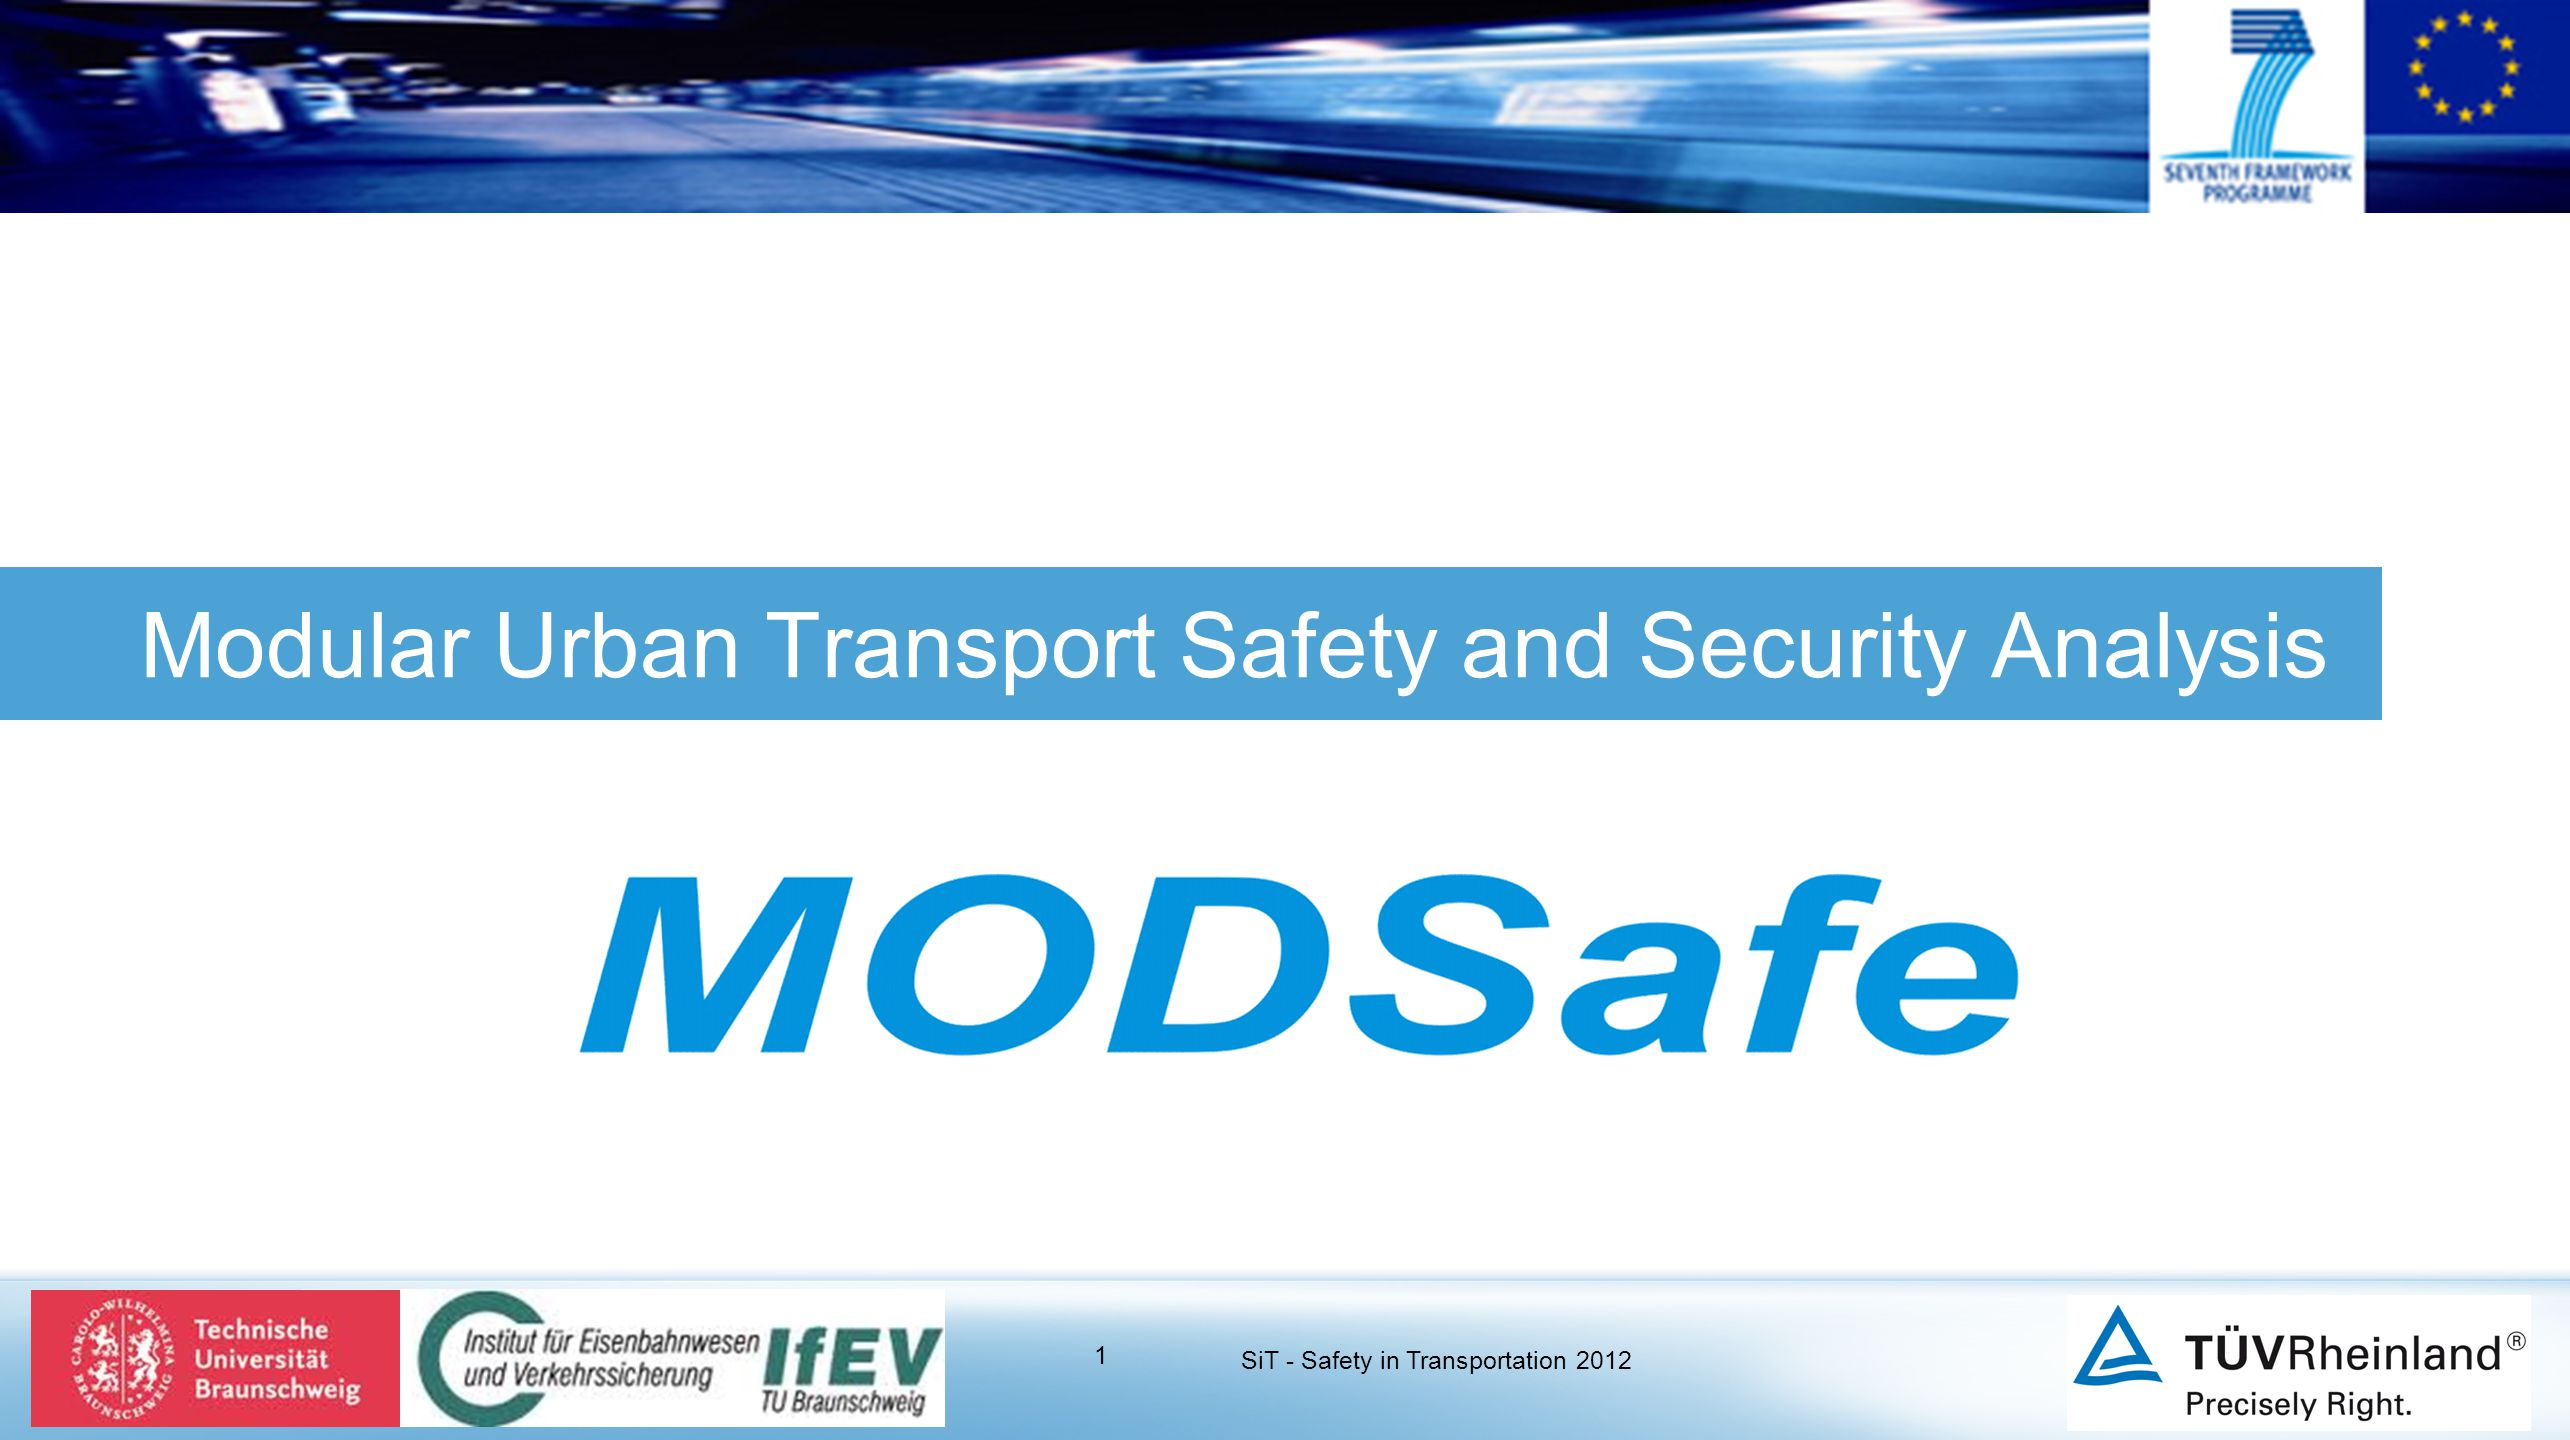 Modular Urban Transport Safety and Security Analysis 1 SiT - Safety in Transportation 2012